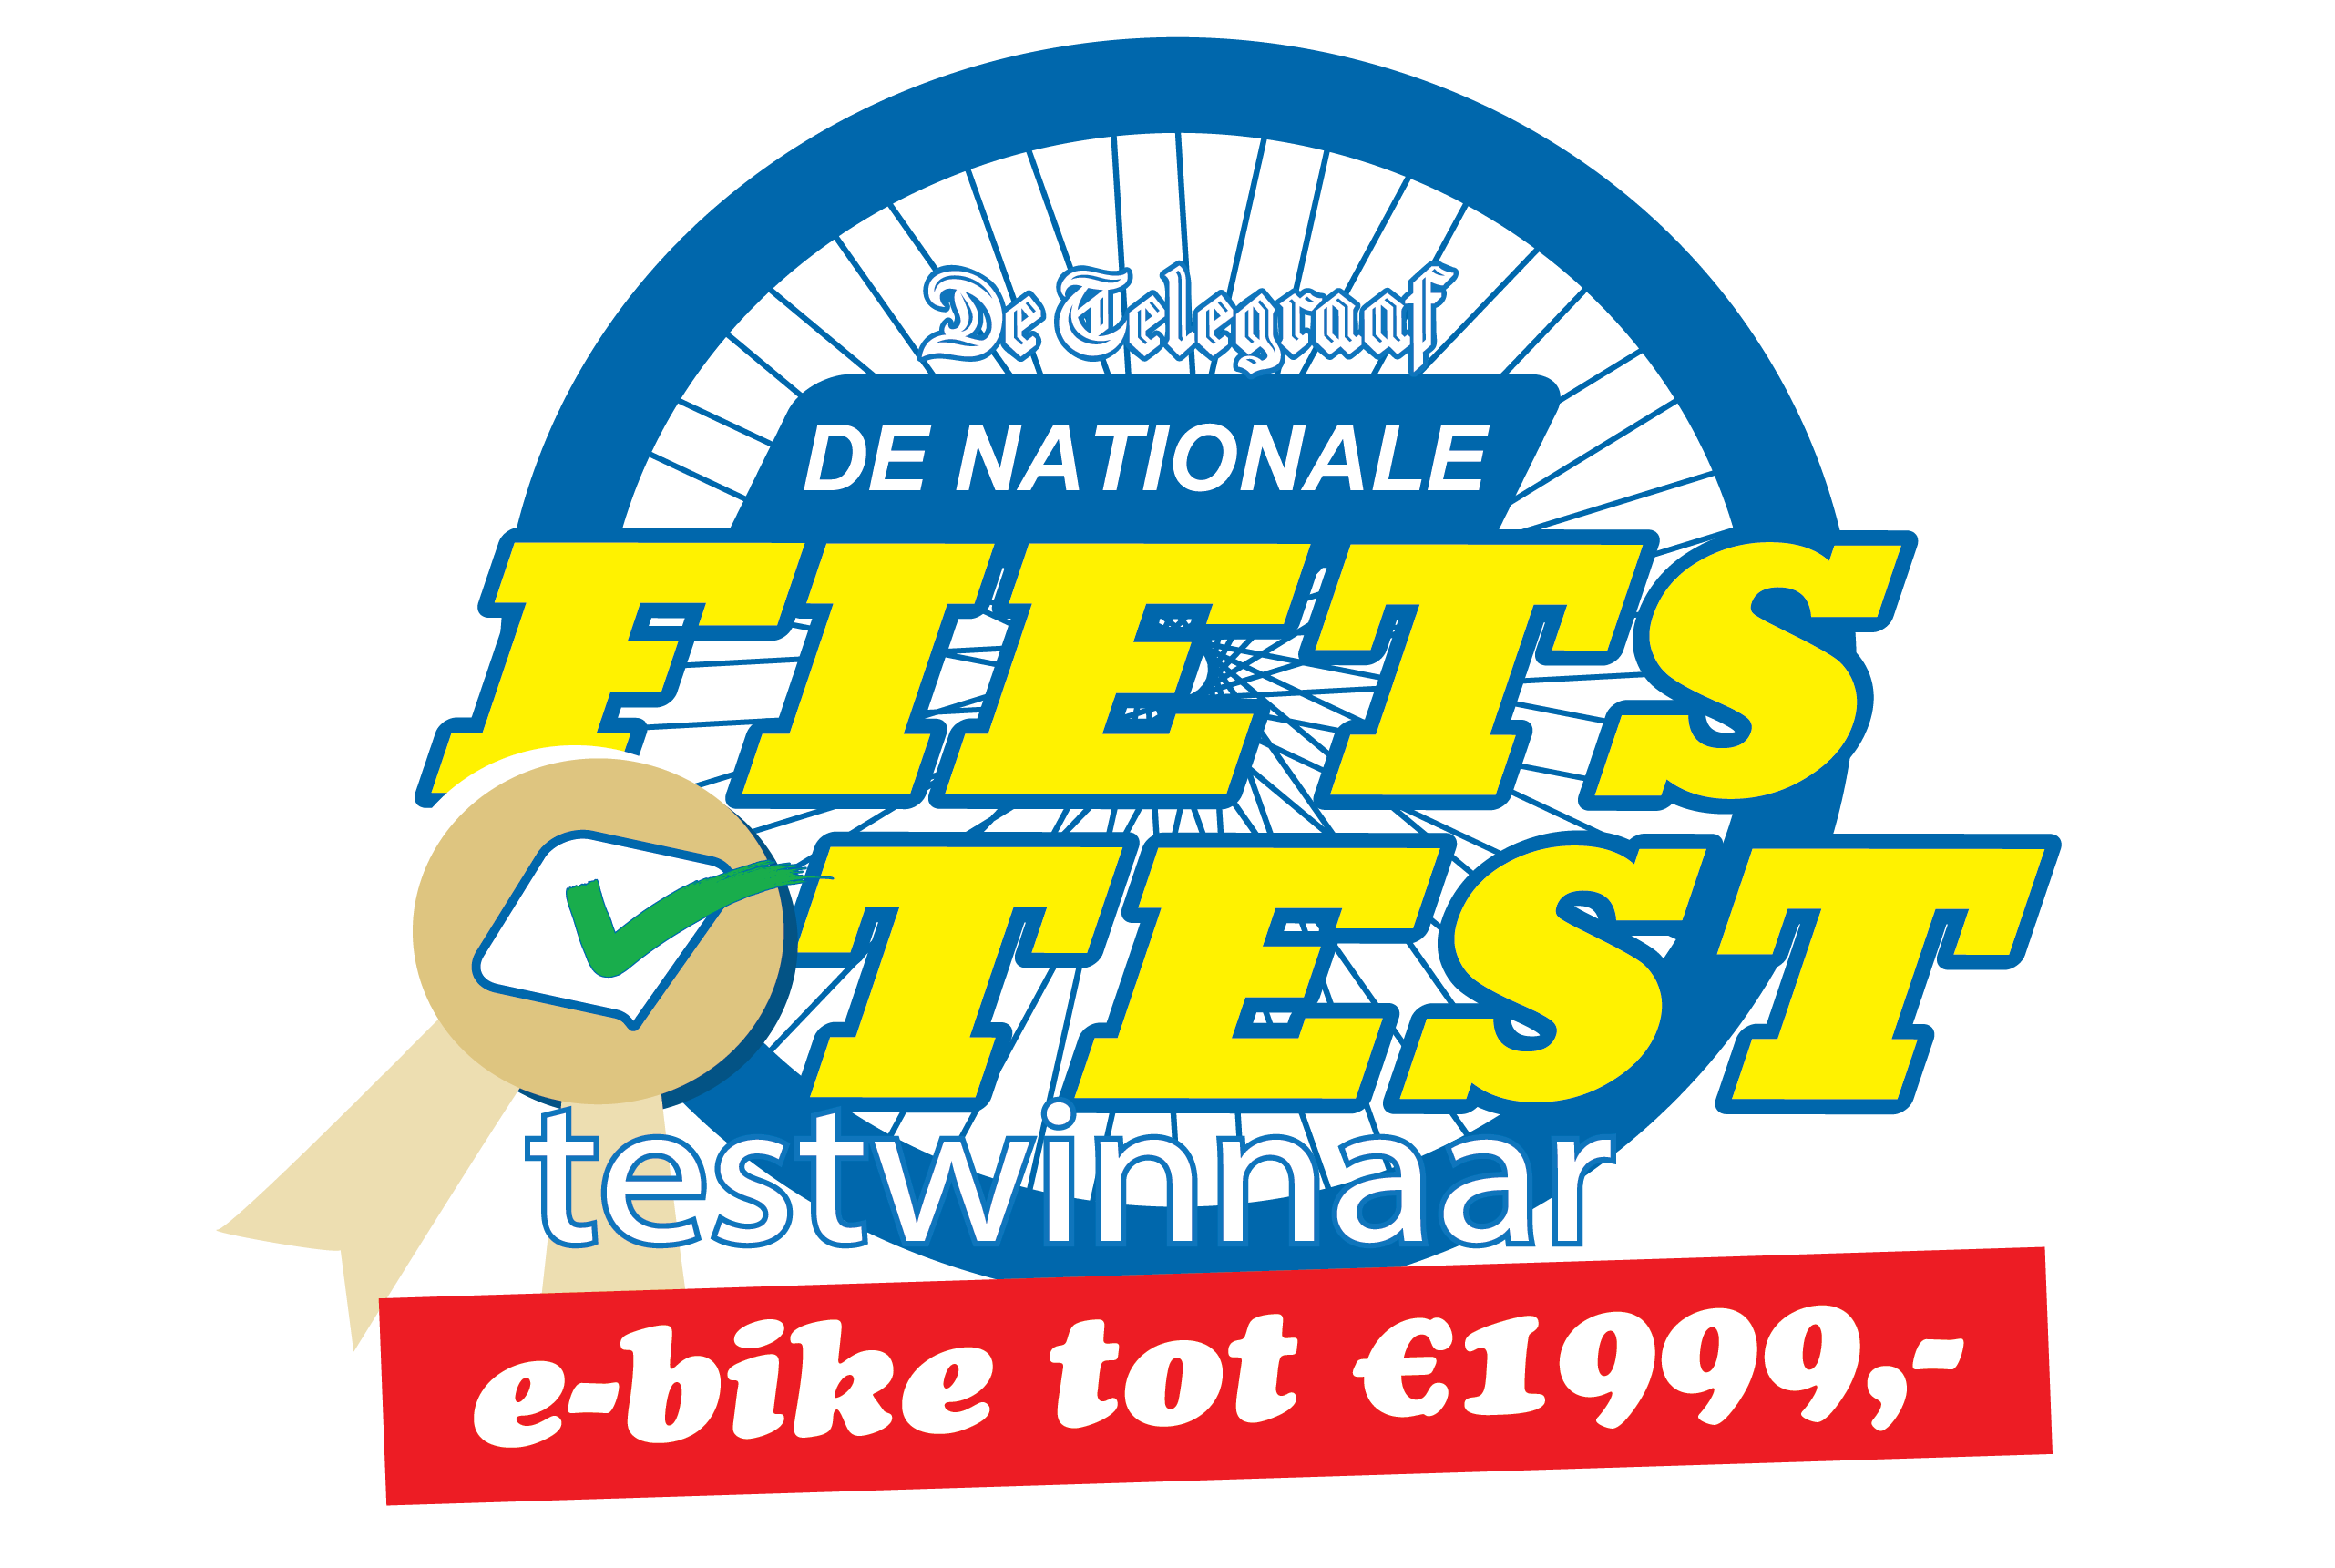 WINNAAR Nationale e-bike test 2015